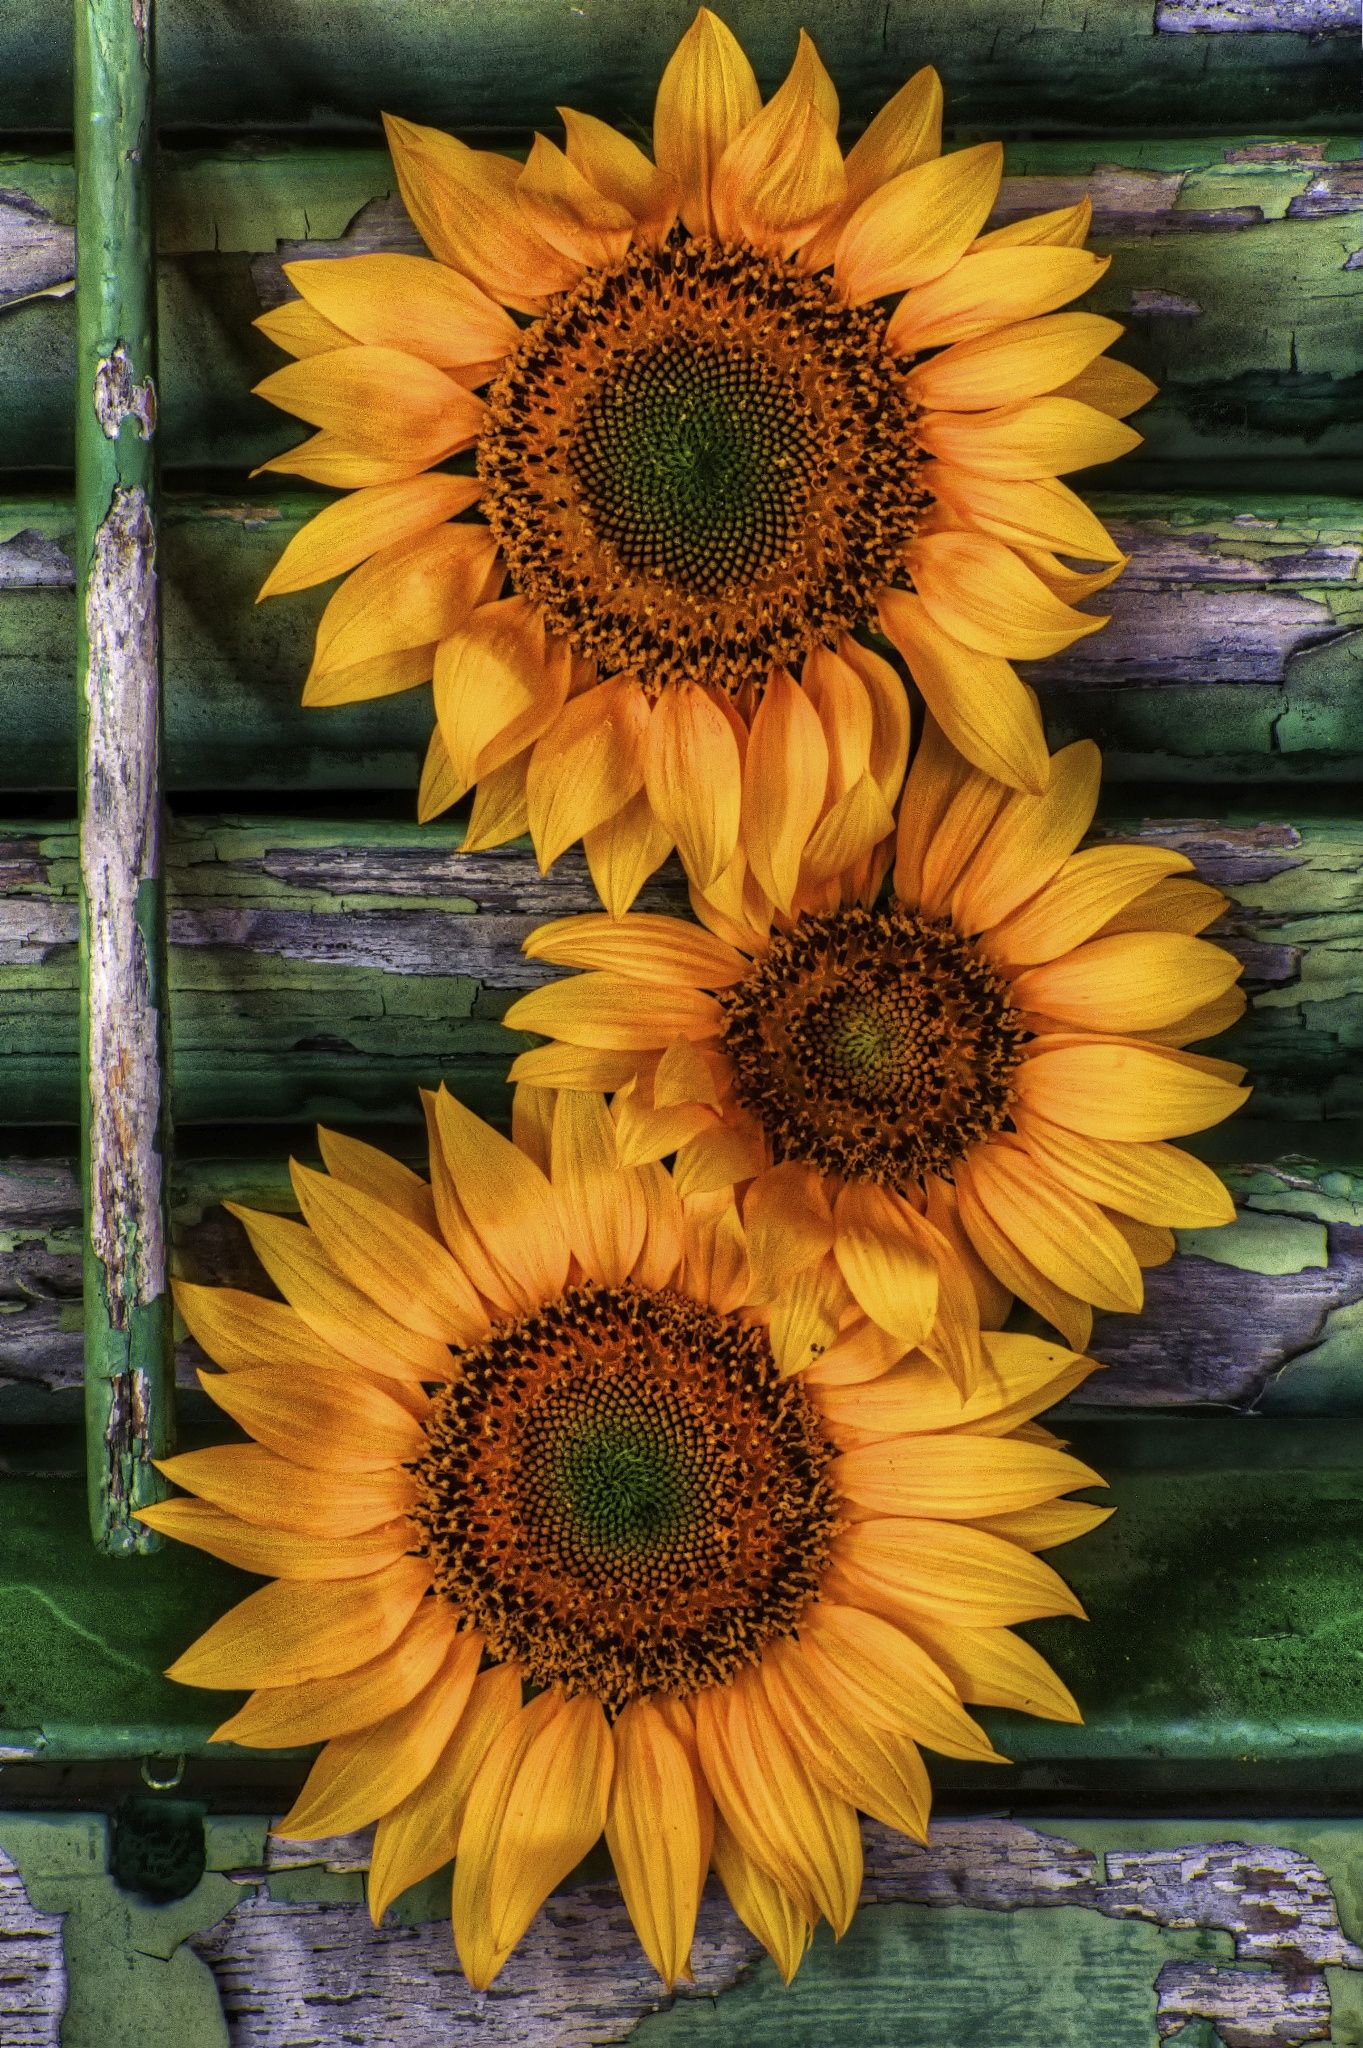 Pin by Anne Comer on Trios Sunflower pictures, Sunflower